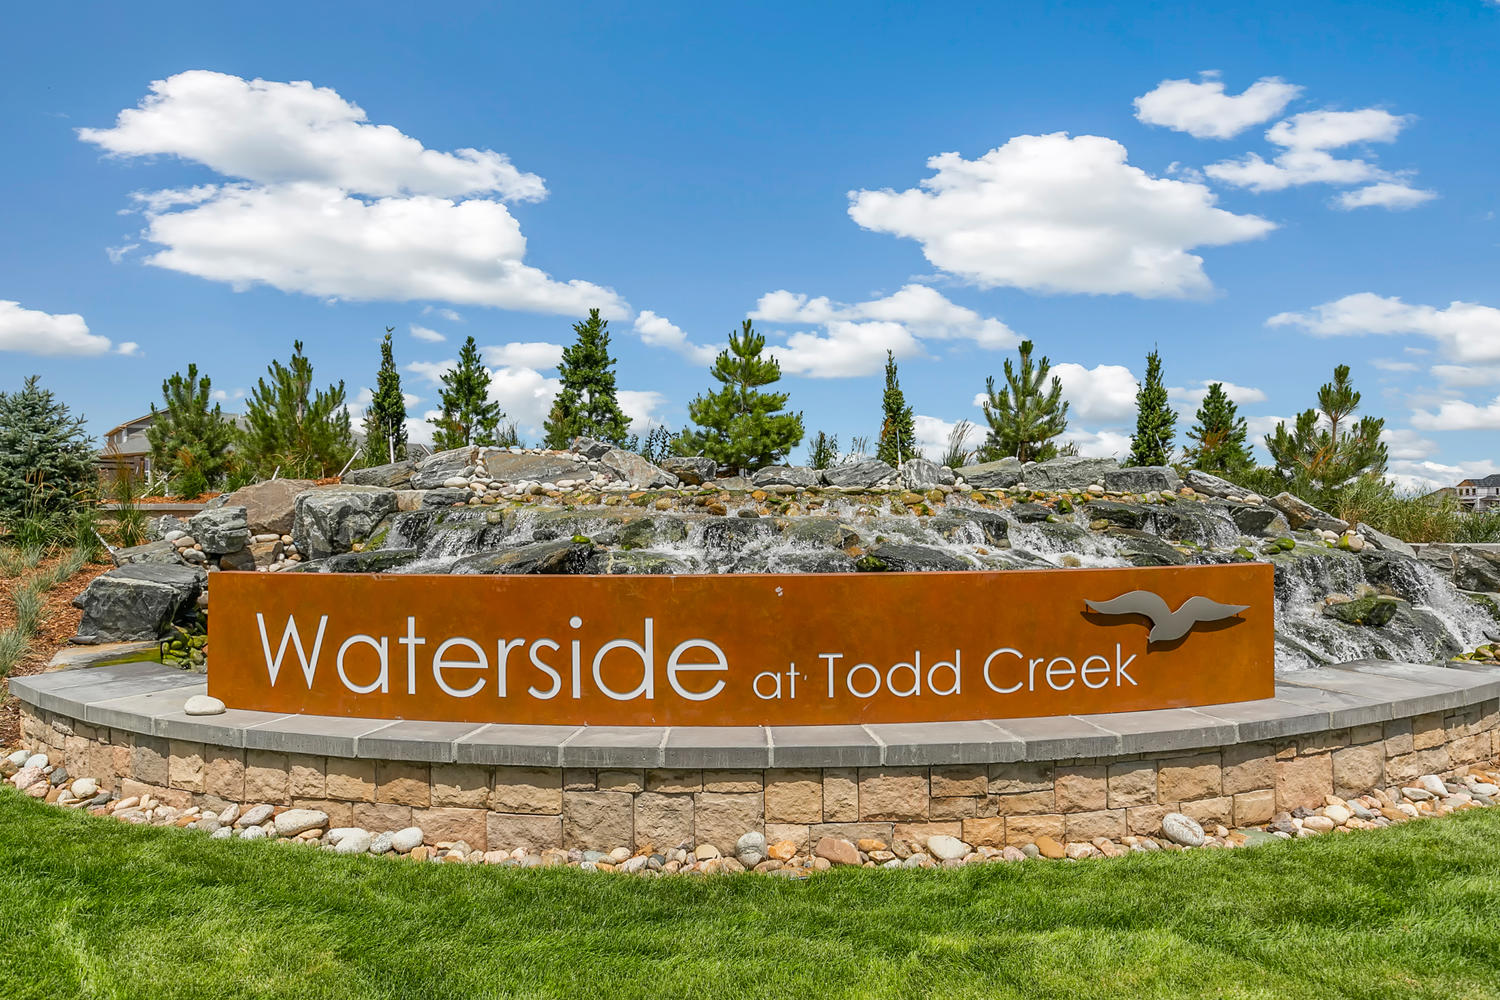 Waterside at Todd Creek